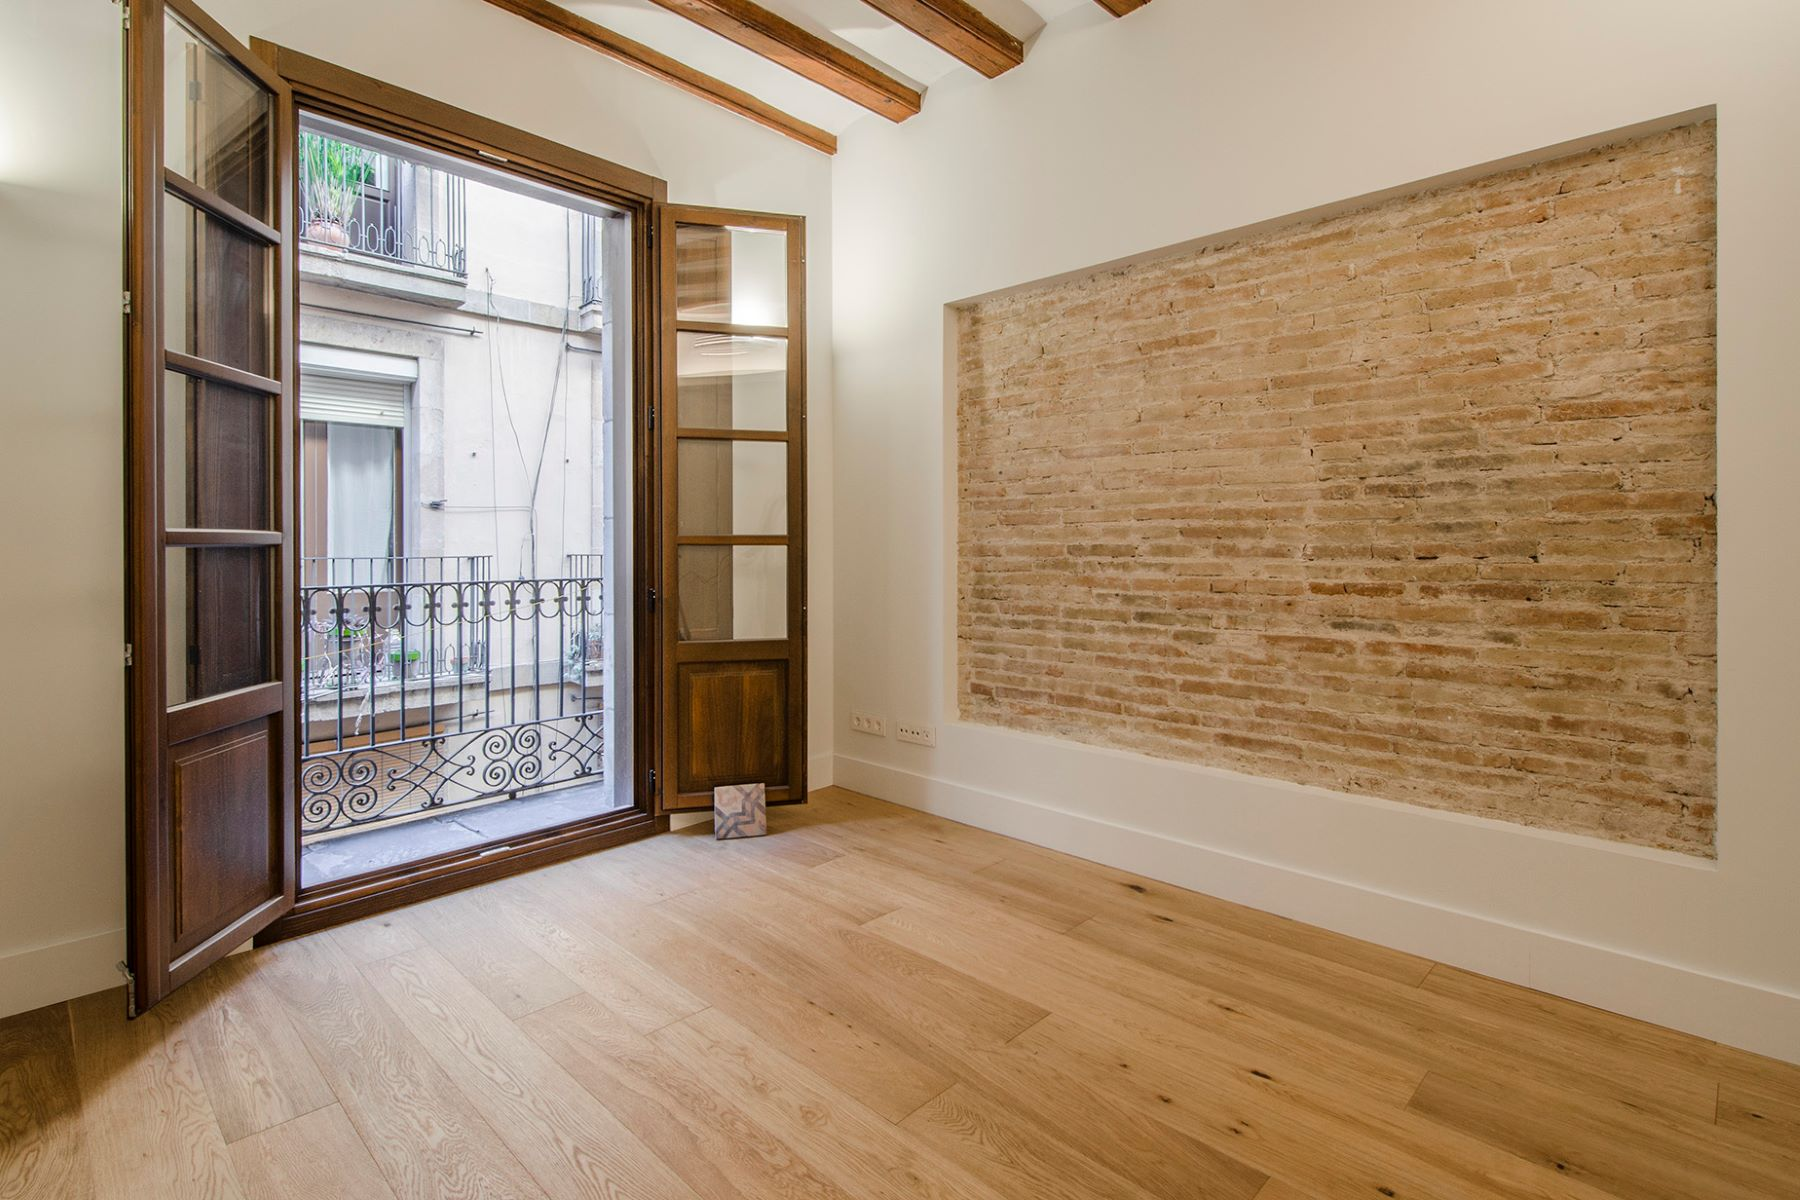 Apartment for Sale at One Bedroom Brand New Penthouse with exclusive terrace Barcelona City, Barcelona, 08002 Spain